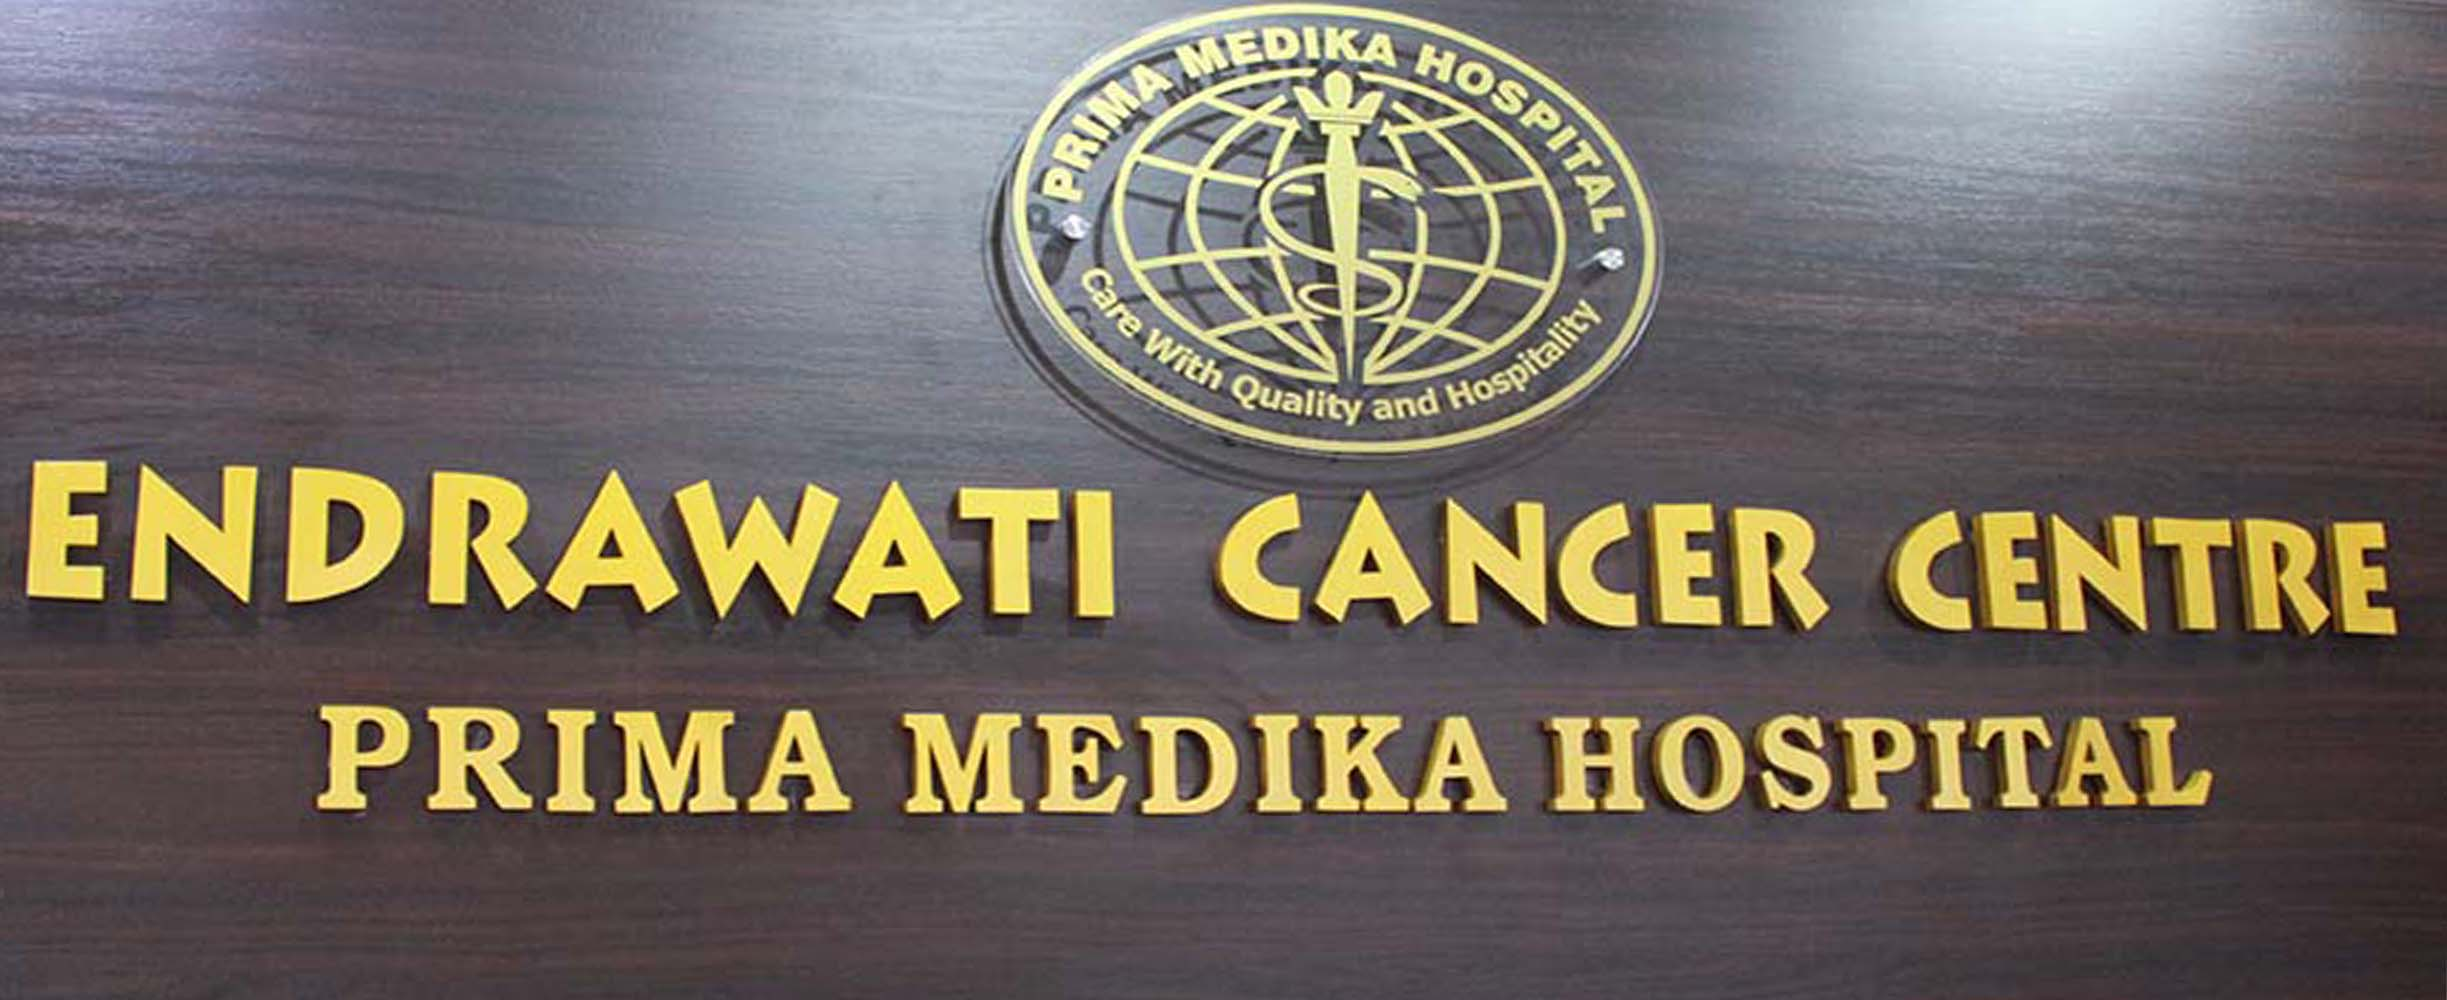 Endrawati Cancer Center